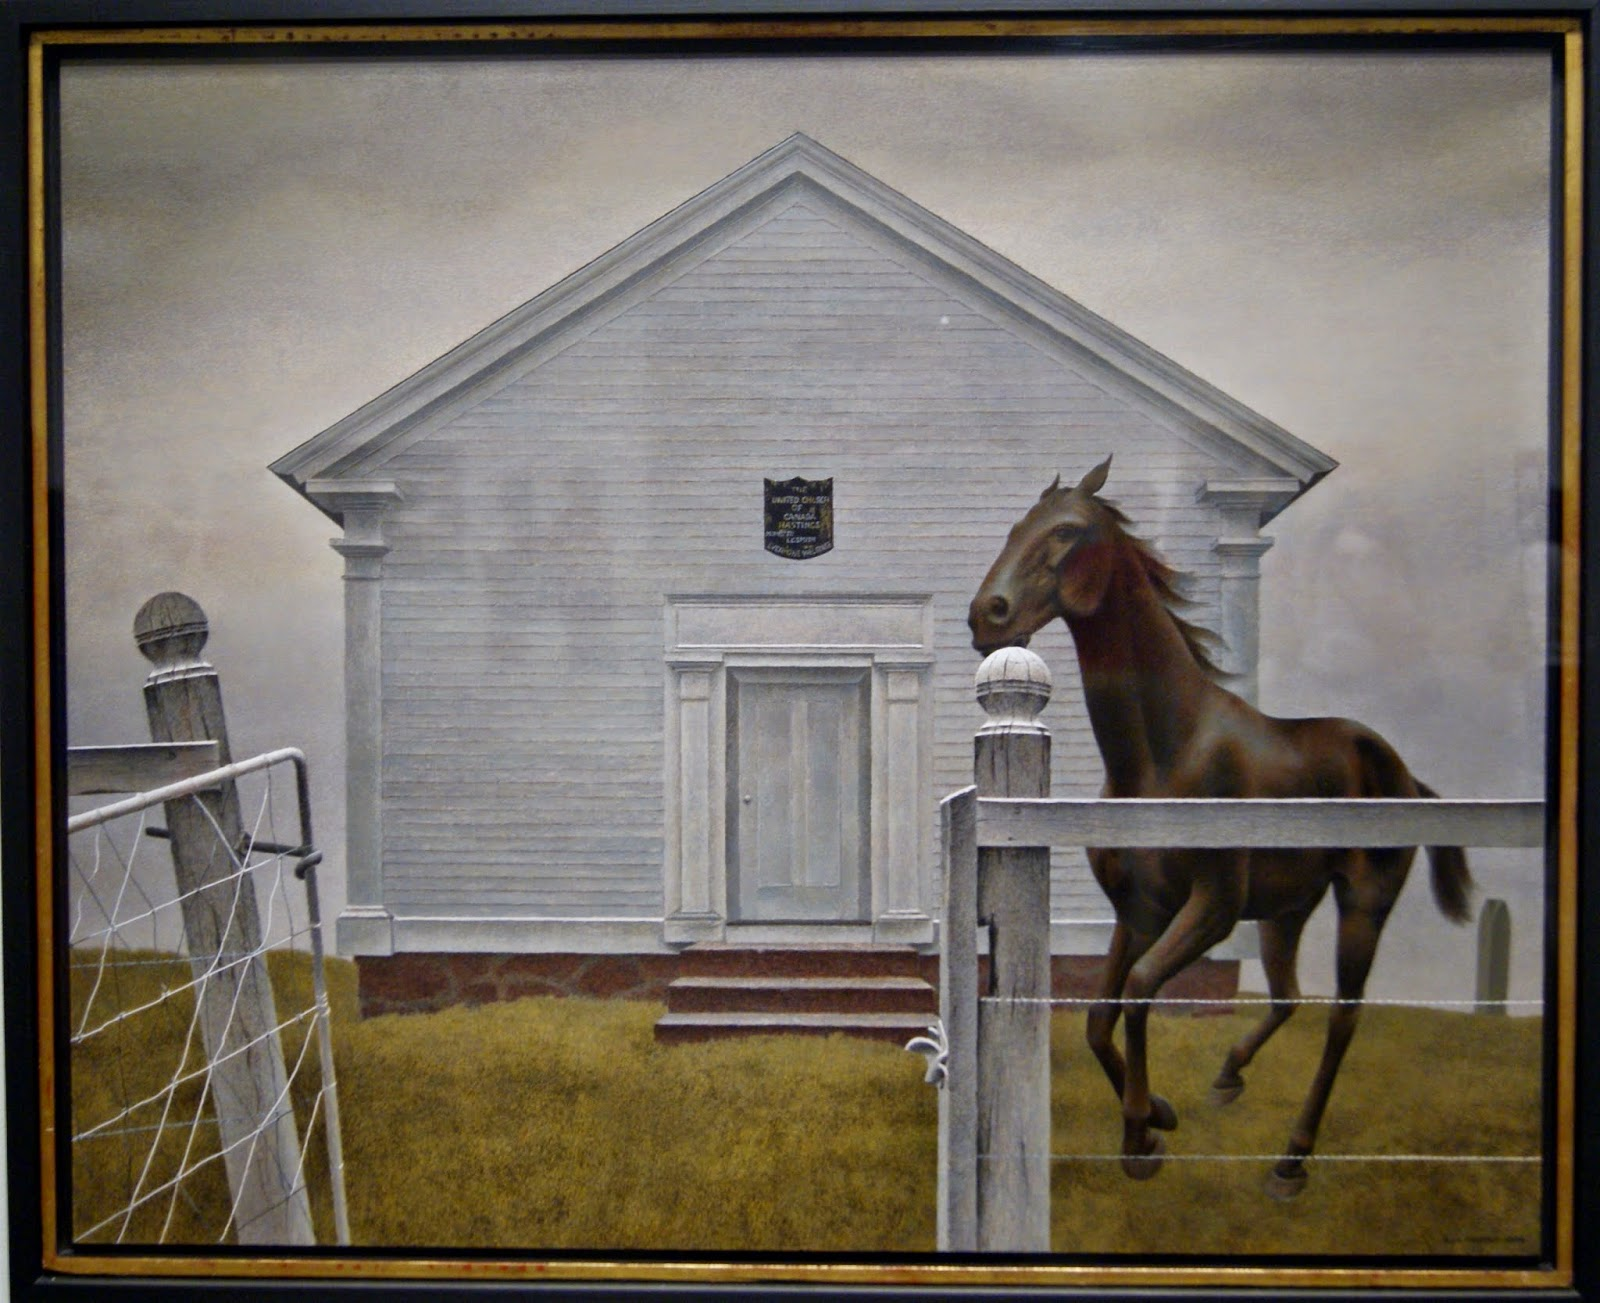 Alex Colville Exhibit at Art Gallery of Ontario in Toronto: Church and Horse, 1964, paintings, art, artmatters, culture,ontario, Canadian Artist, Painter, Canada